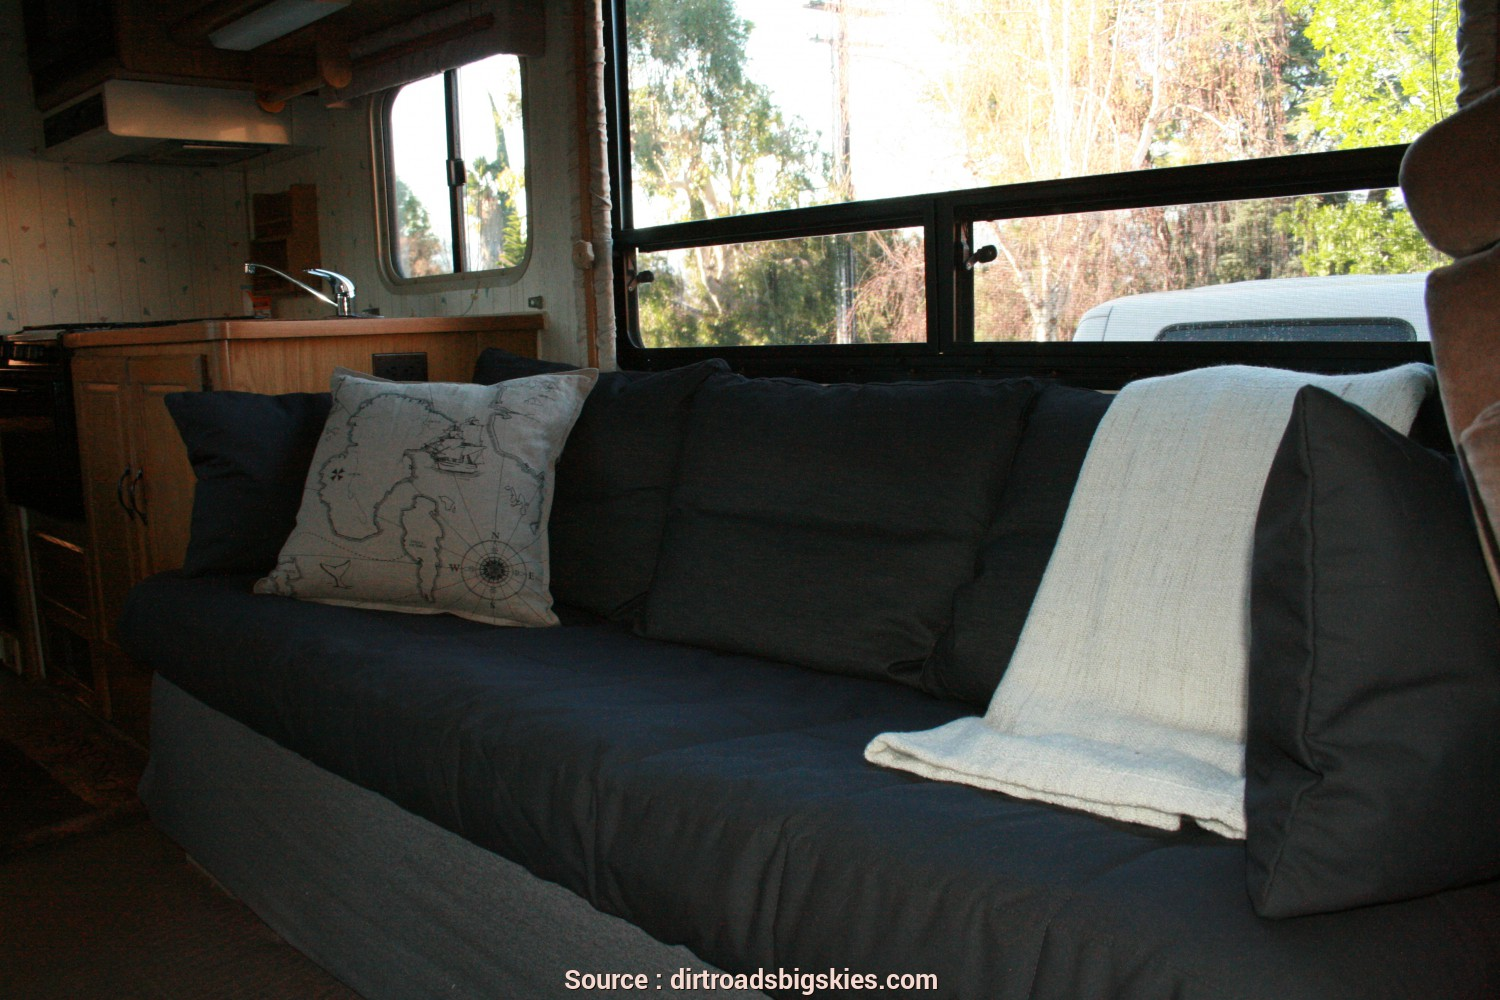 Beddinge Ikea Allegro, Esotico RV Renovation: Jackknife Couch Before/After, Dirt Roads,, Skies